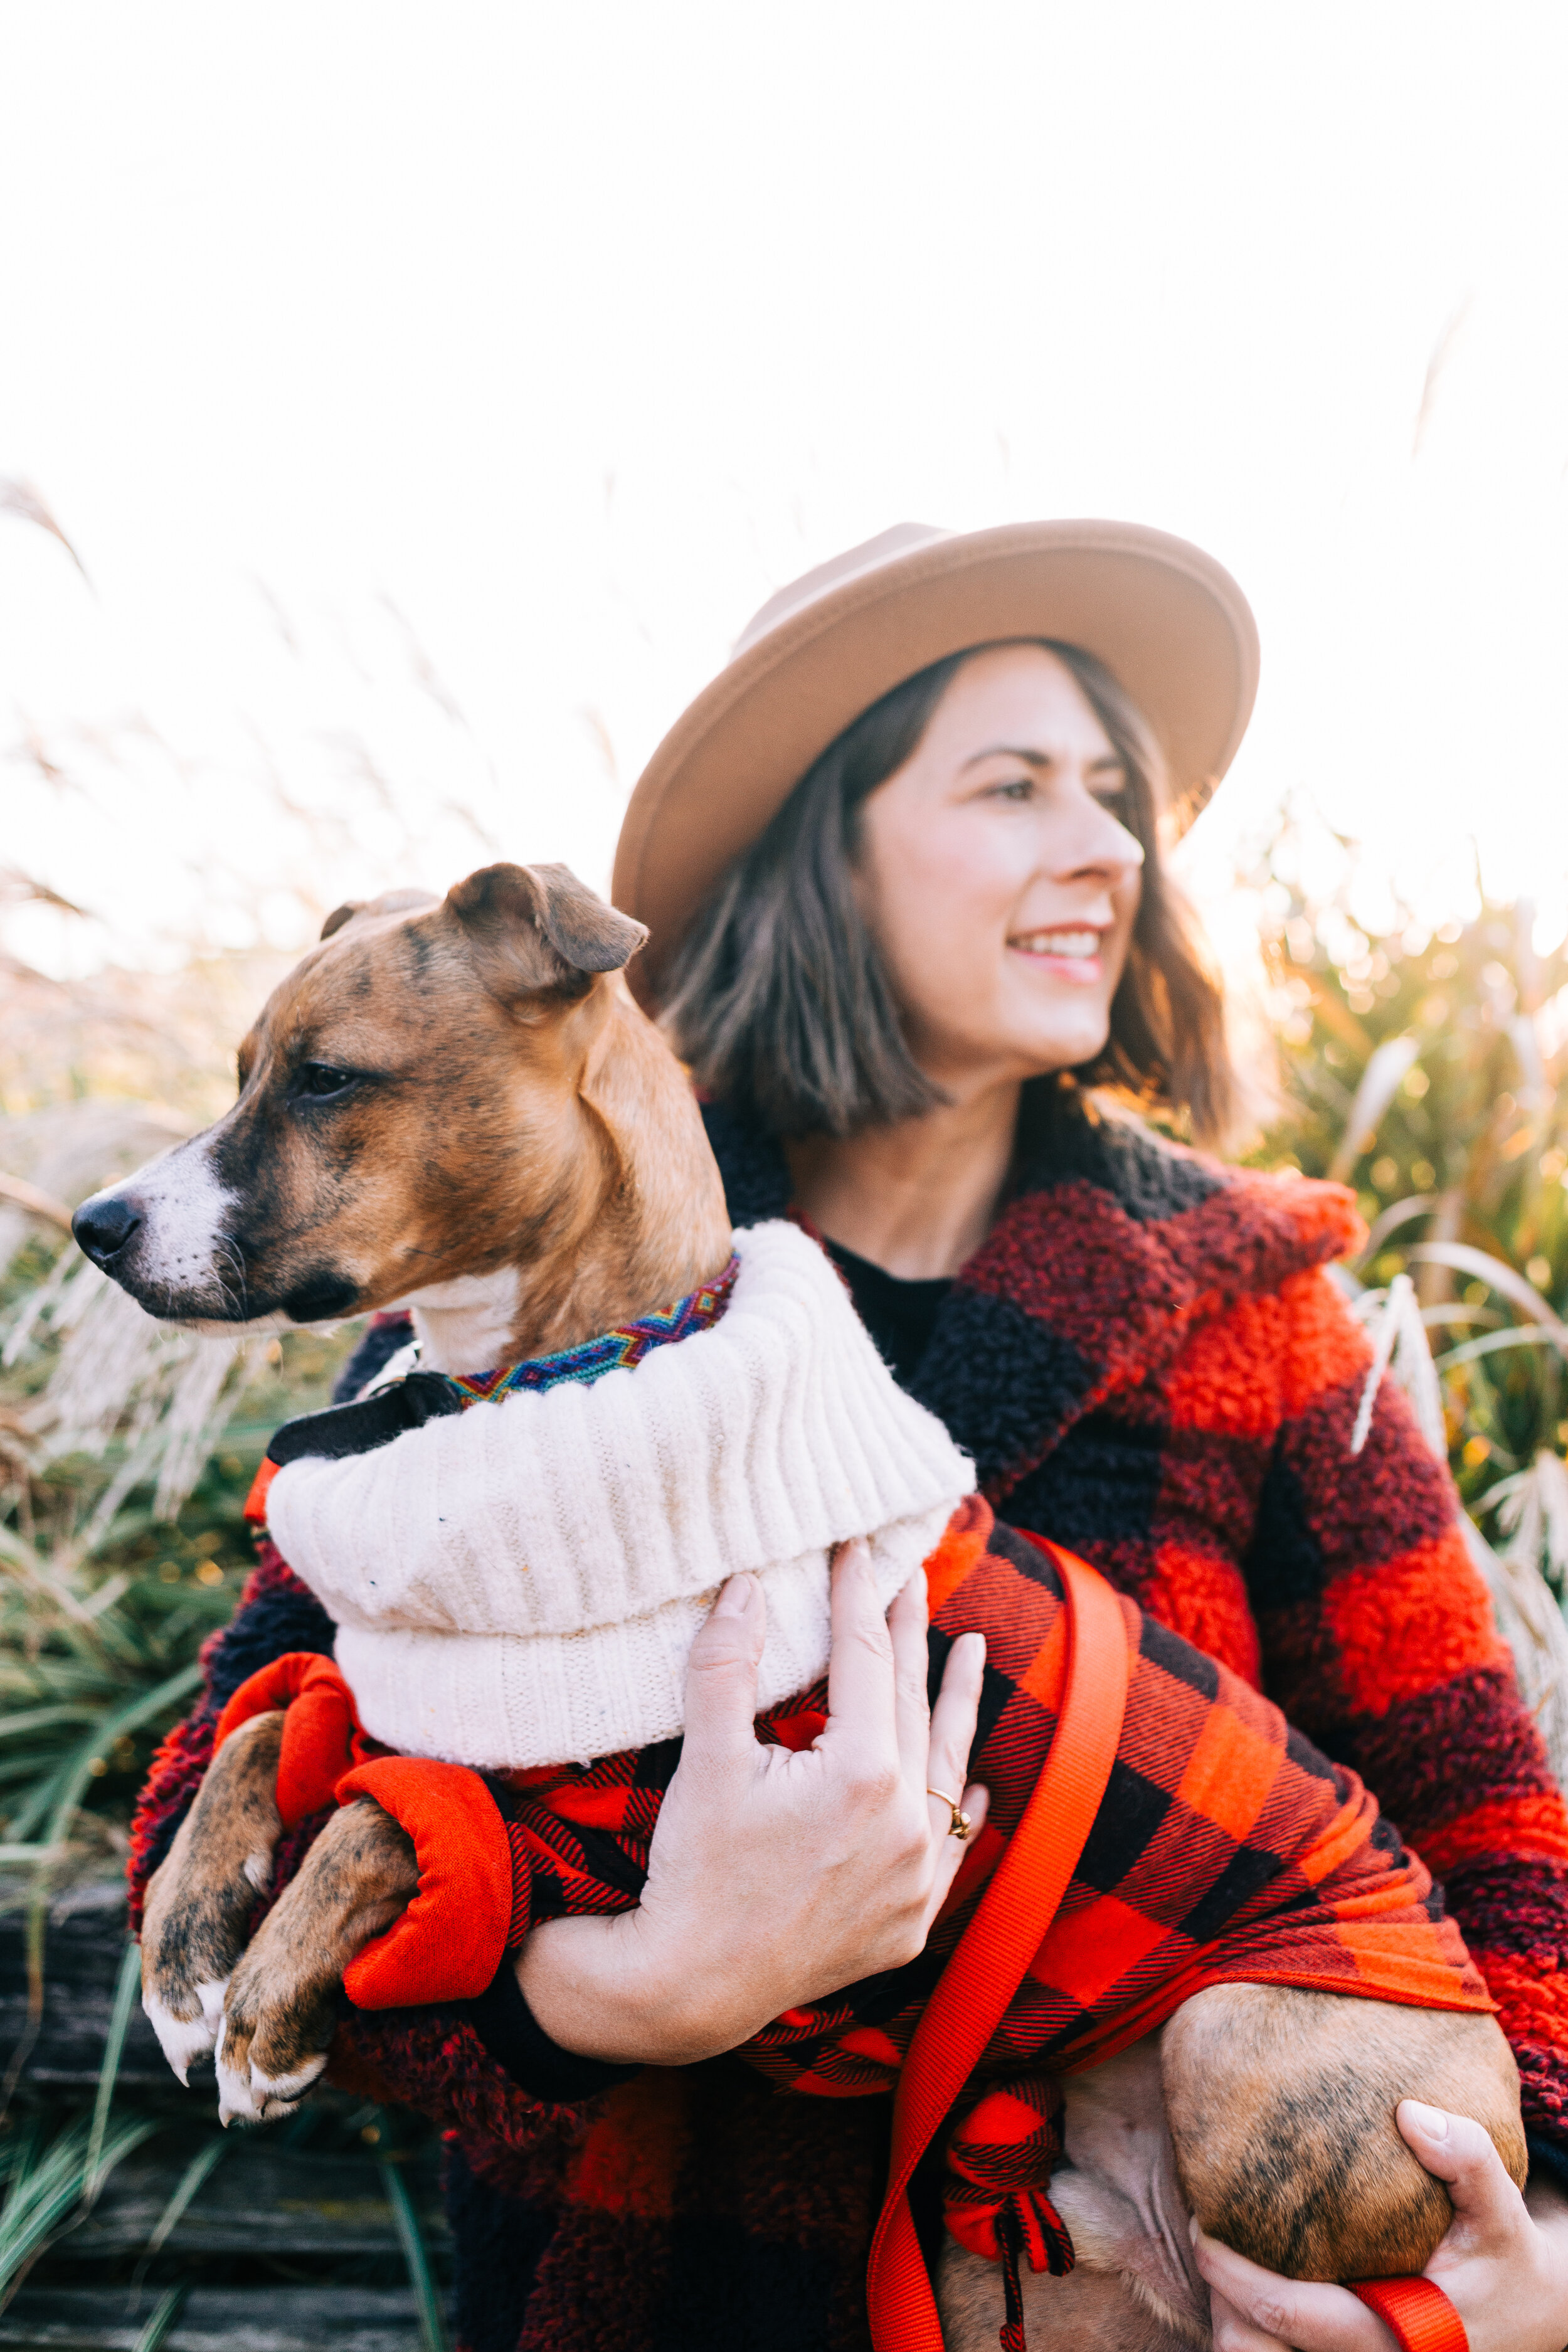 This is the Holiday photo shoot I recently had with my dog, Churro, for our Holiday card this year.